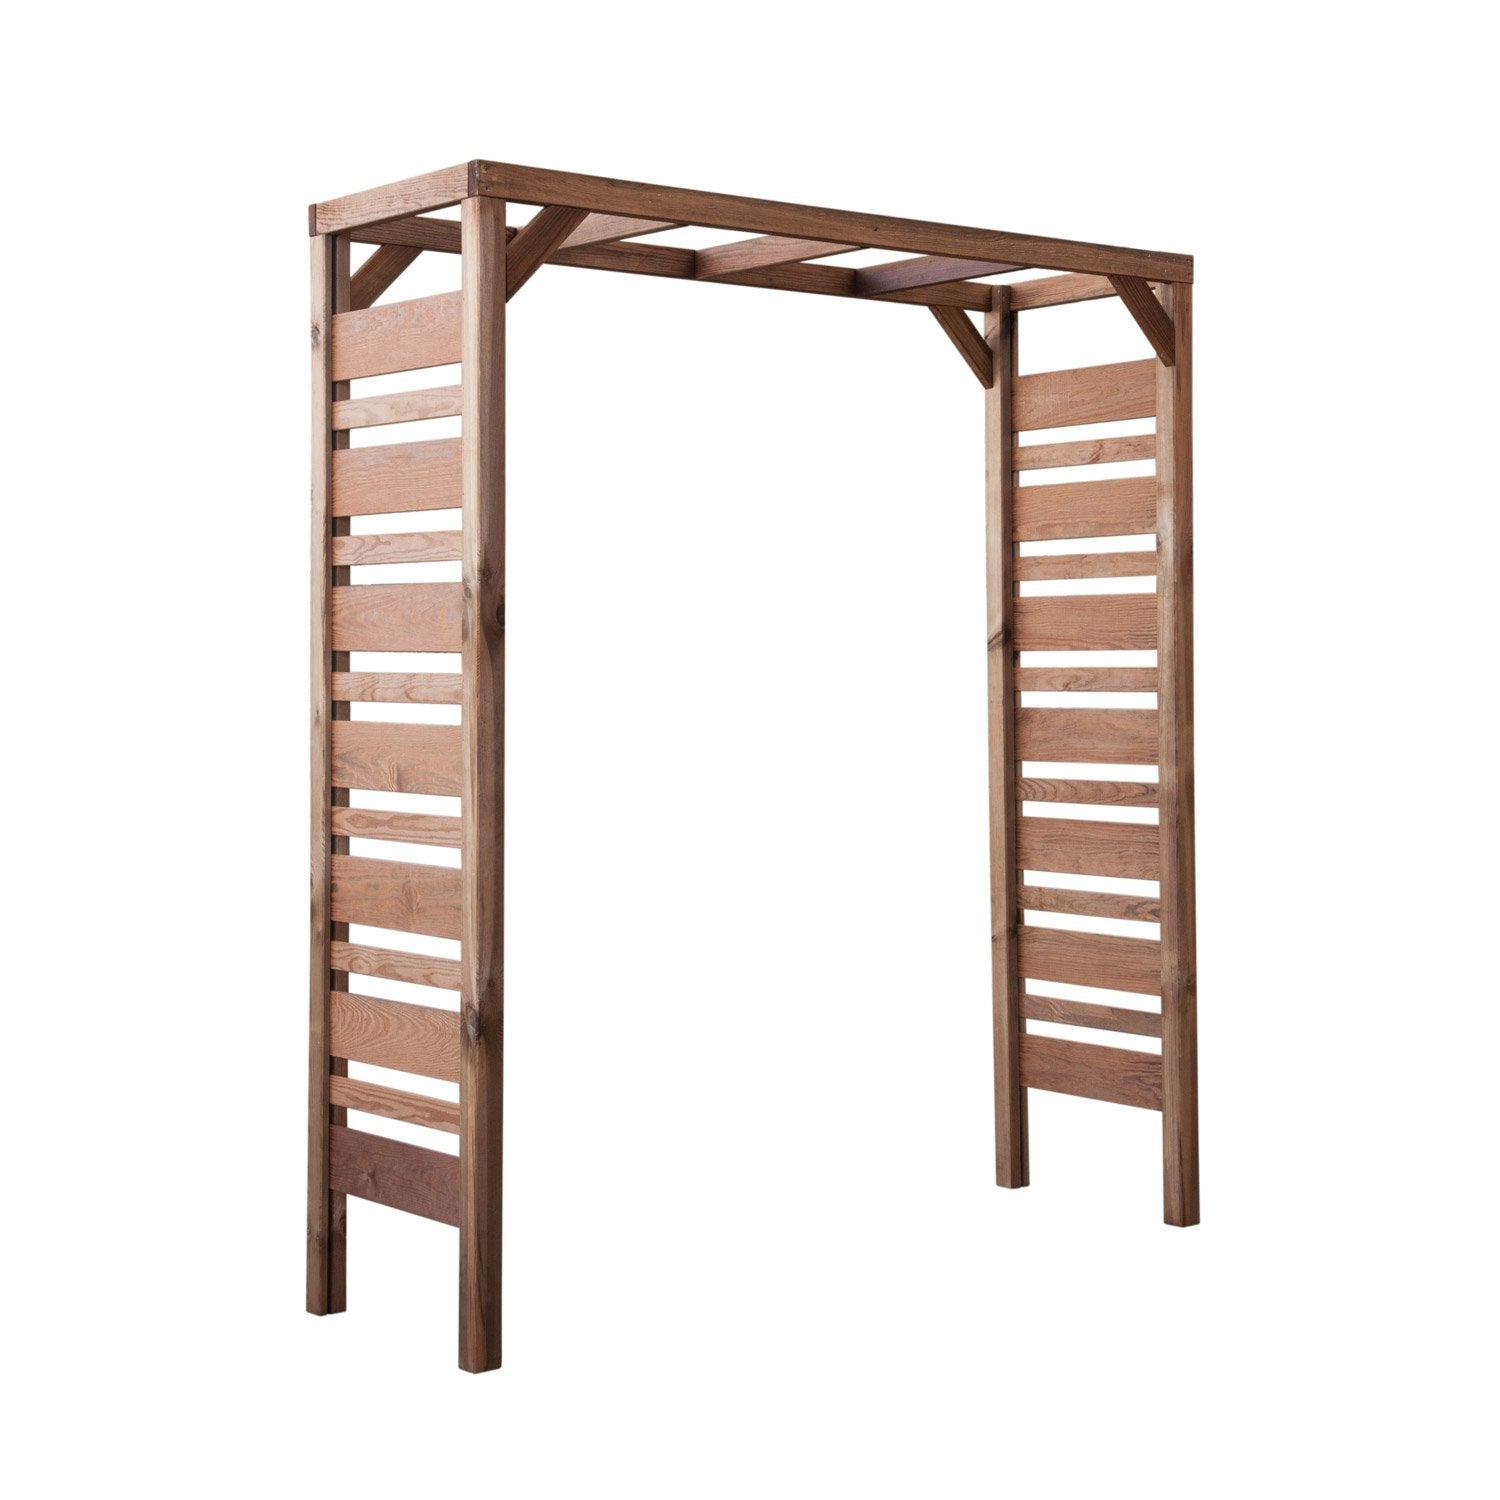 pergola double stelmet x x cm leroy merlin. Black Bedroom Furniture Sets. Home Design Ideas